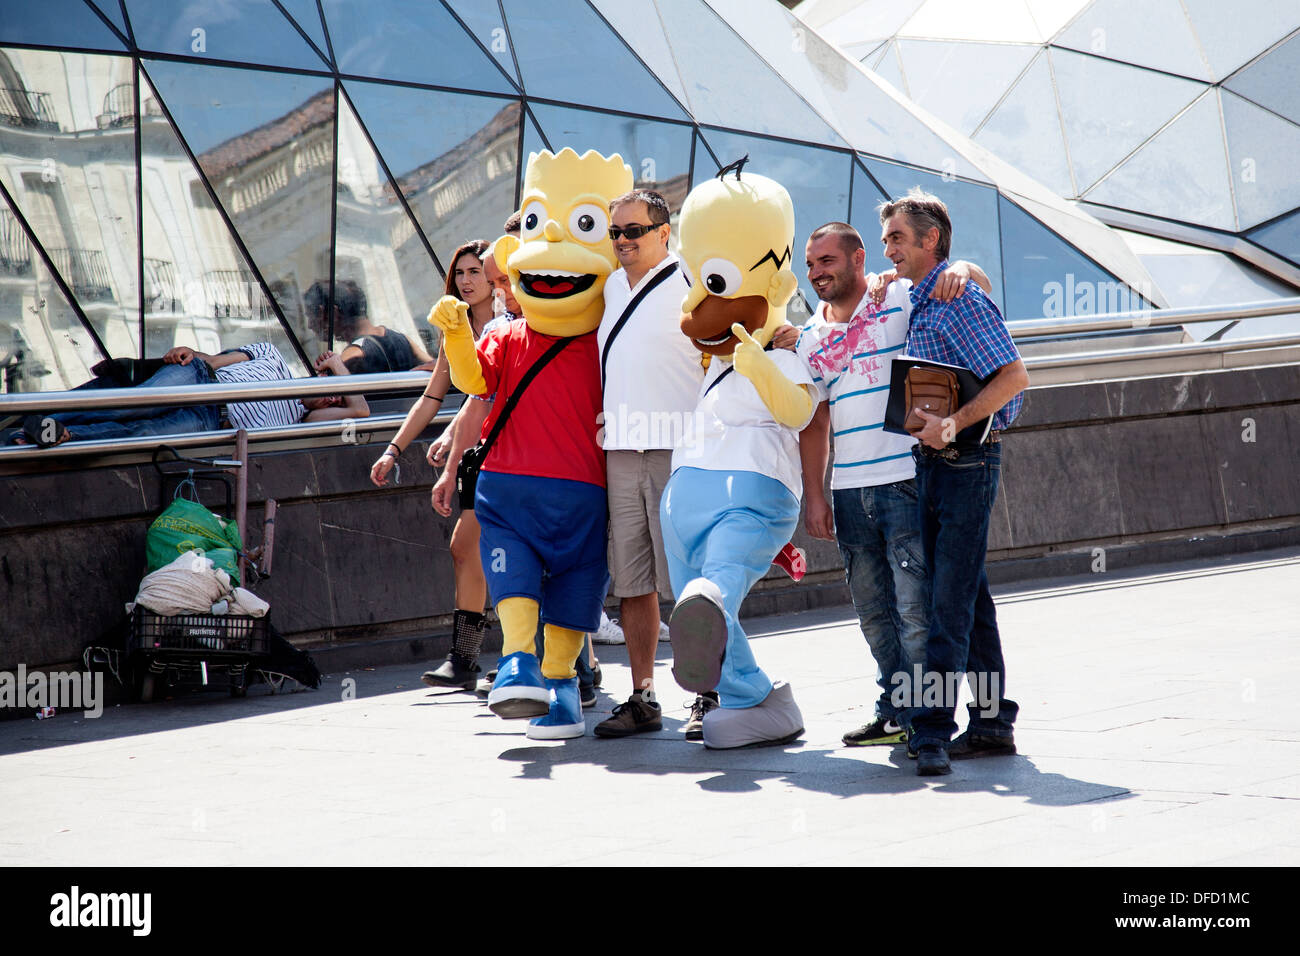 Tourist pose with street artist as the Simpsons in the Puerta del Sol, Madrid, Spain Stock Photo